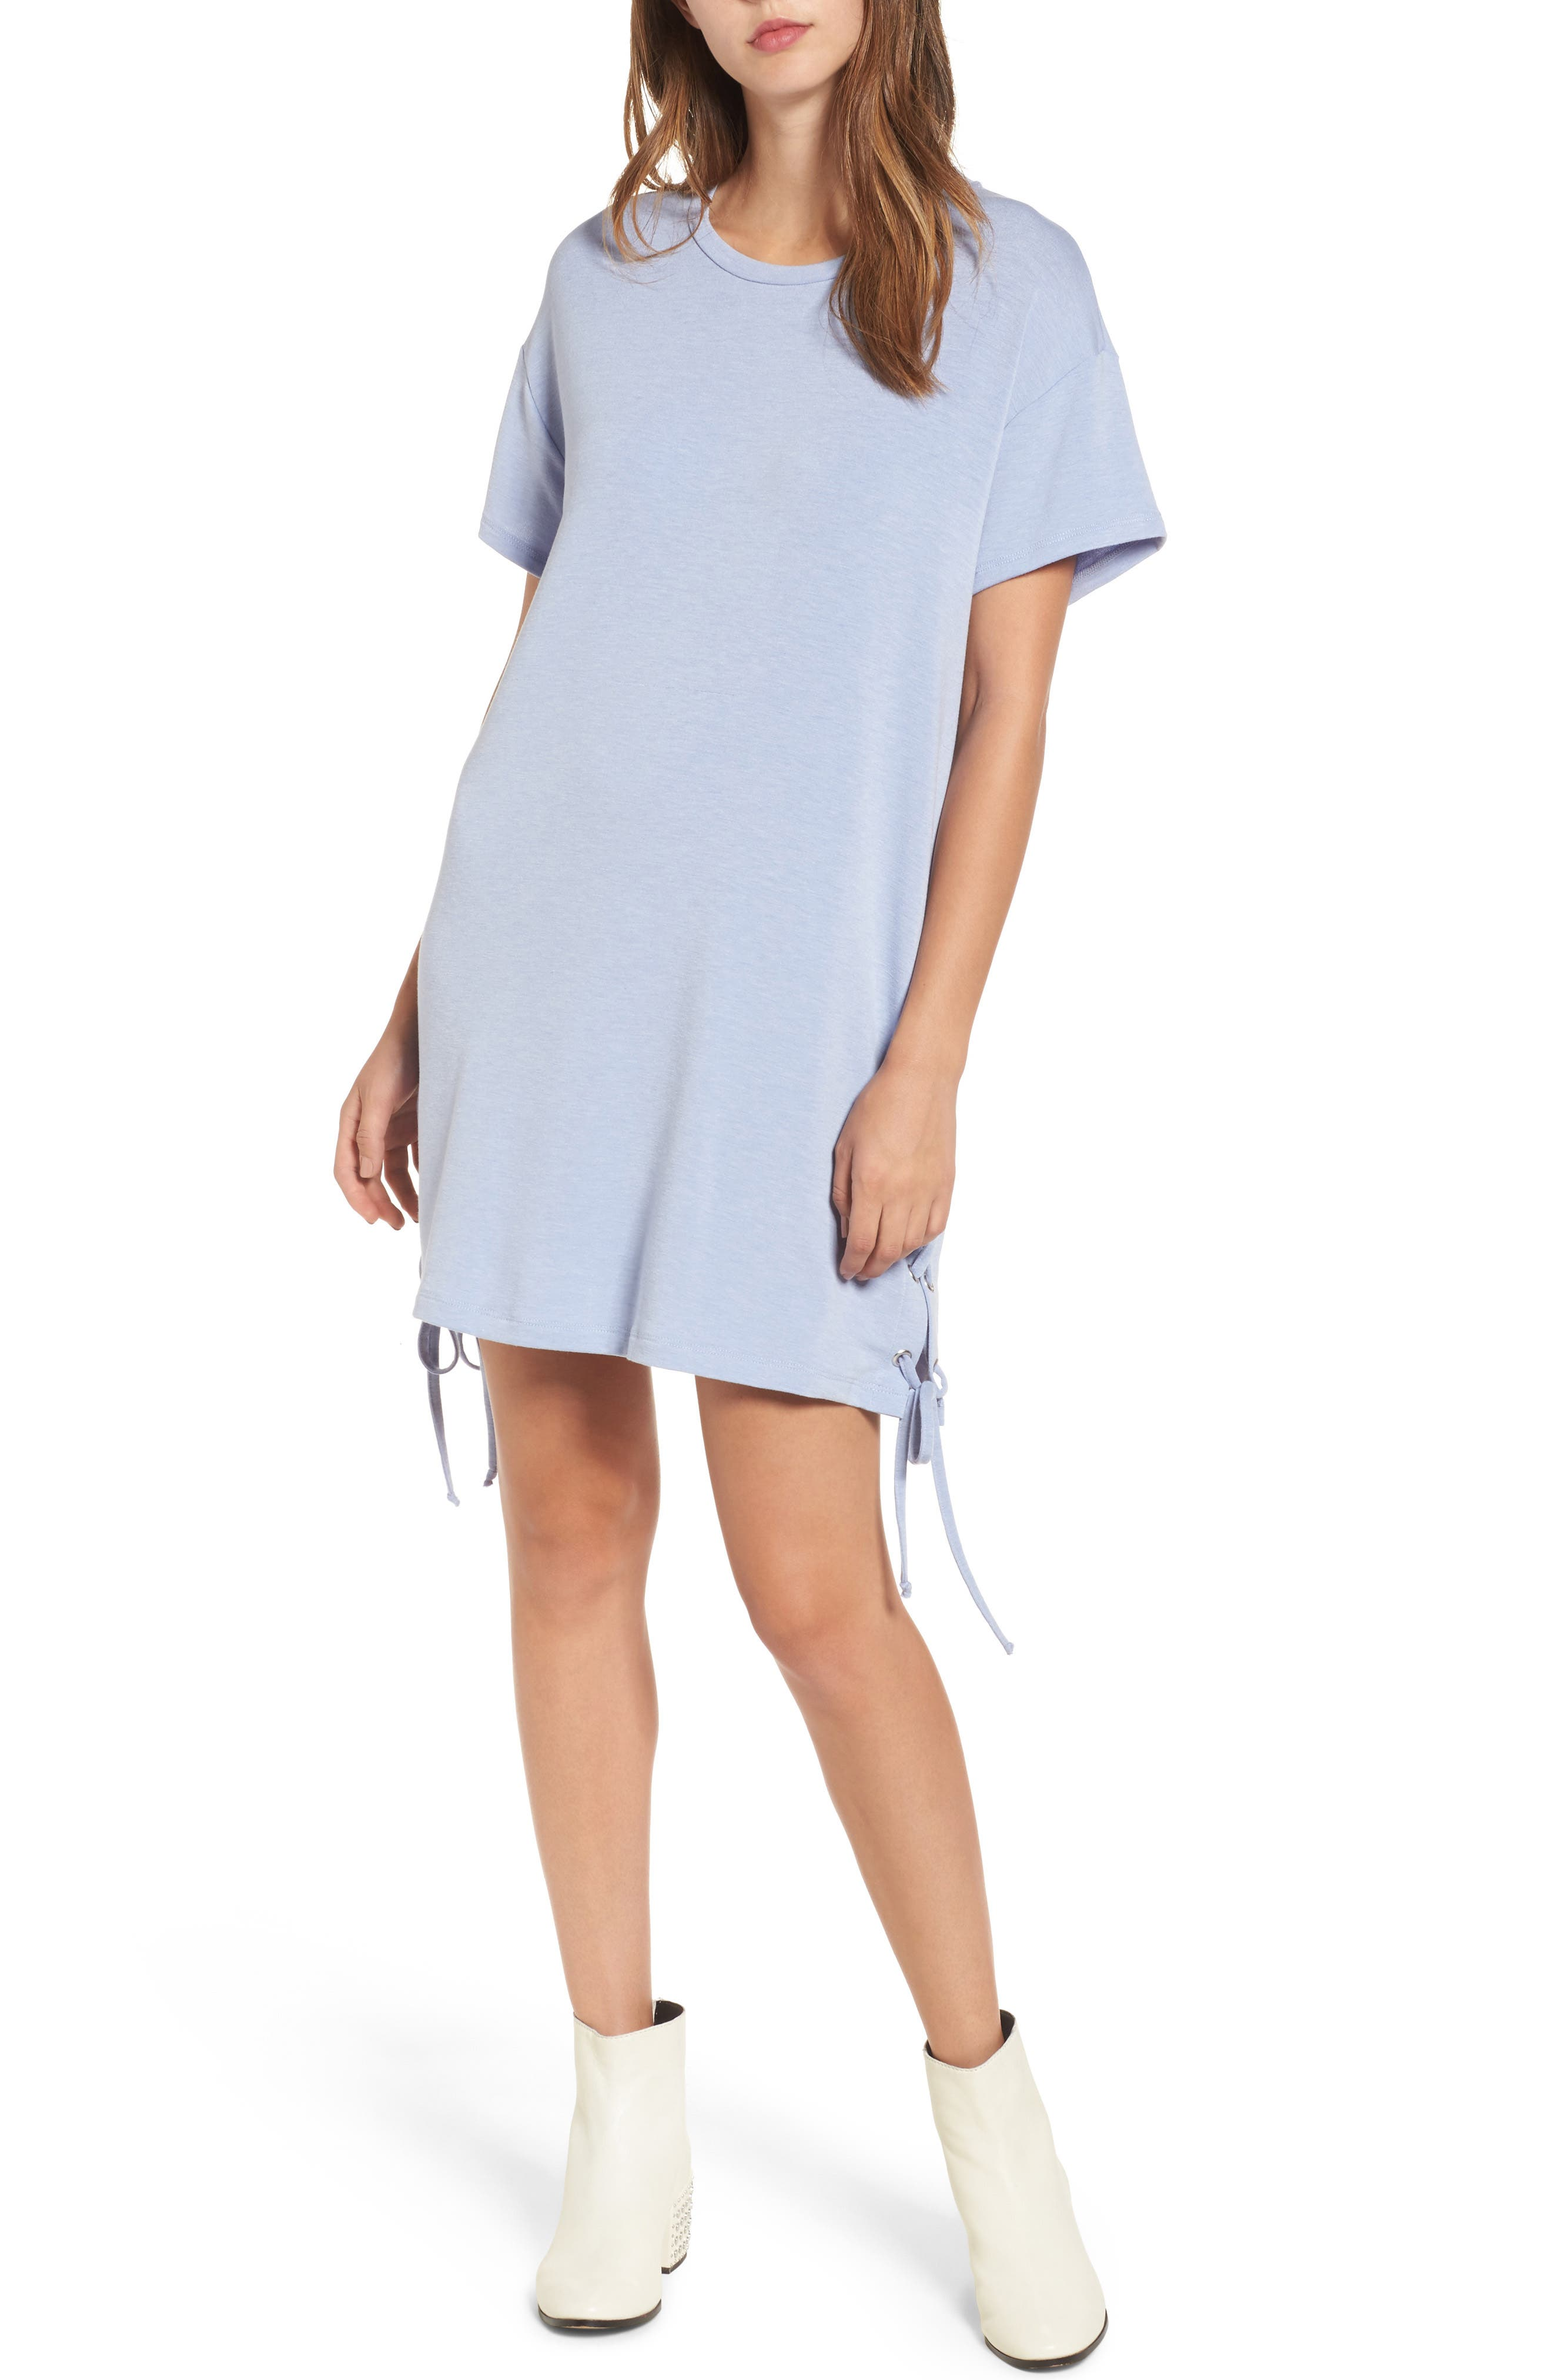 Alternate Image 1 Selected - Lace-Up Side T-Shirt Dress